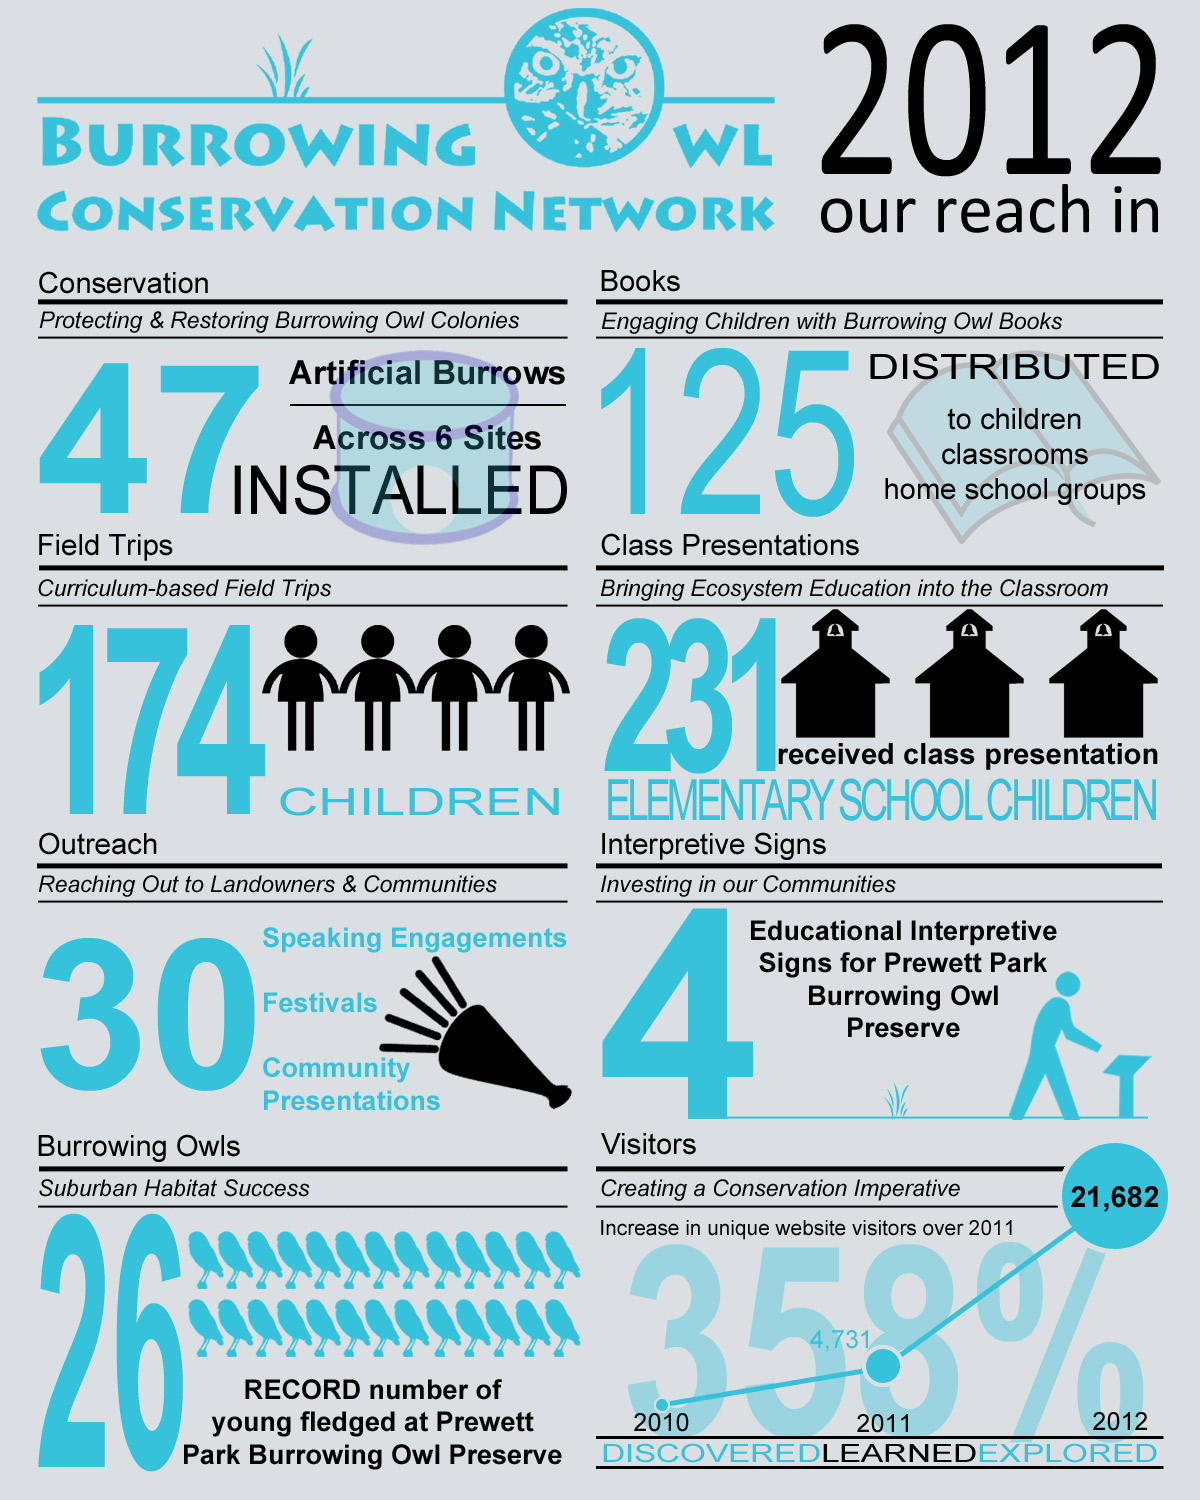 Burrowing Owl Conservation Infographic 2012 - Our reach in conservation